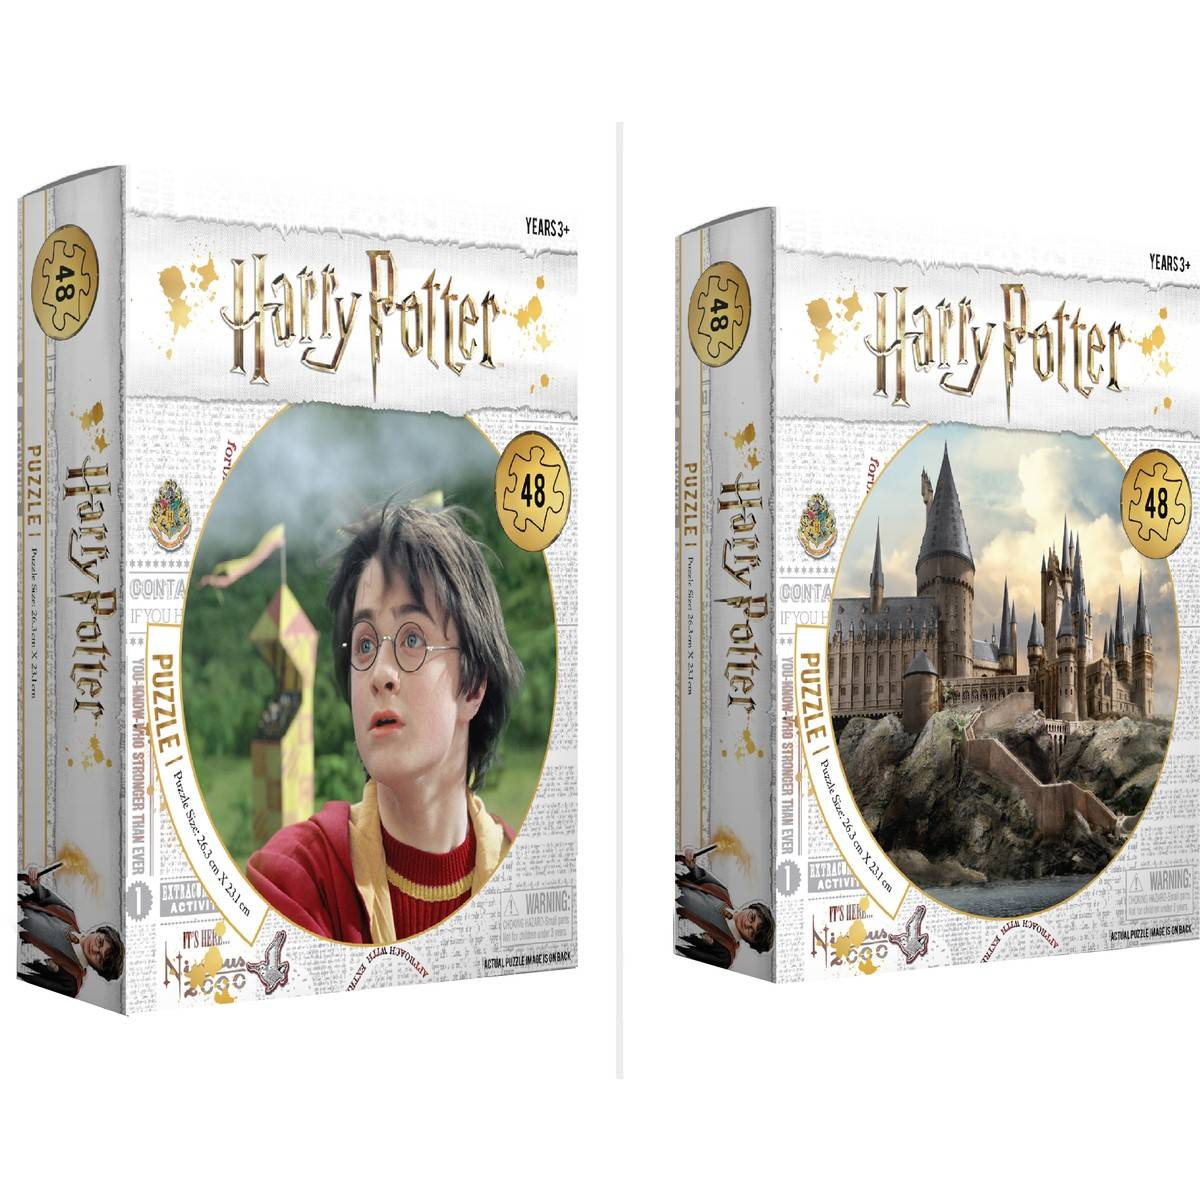 HARRY POTTER BOXED PUZZLE | Toyworld Frankston | Toyworld Frankston